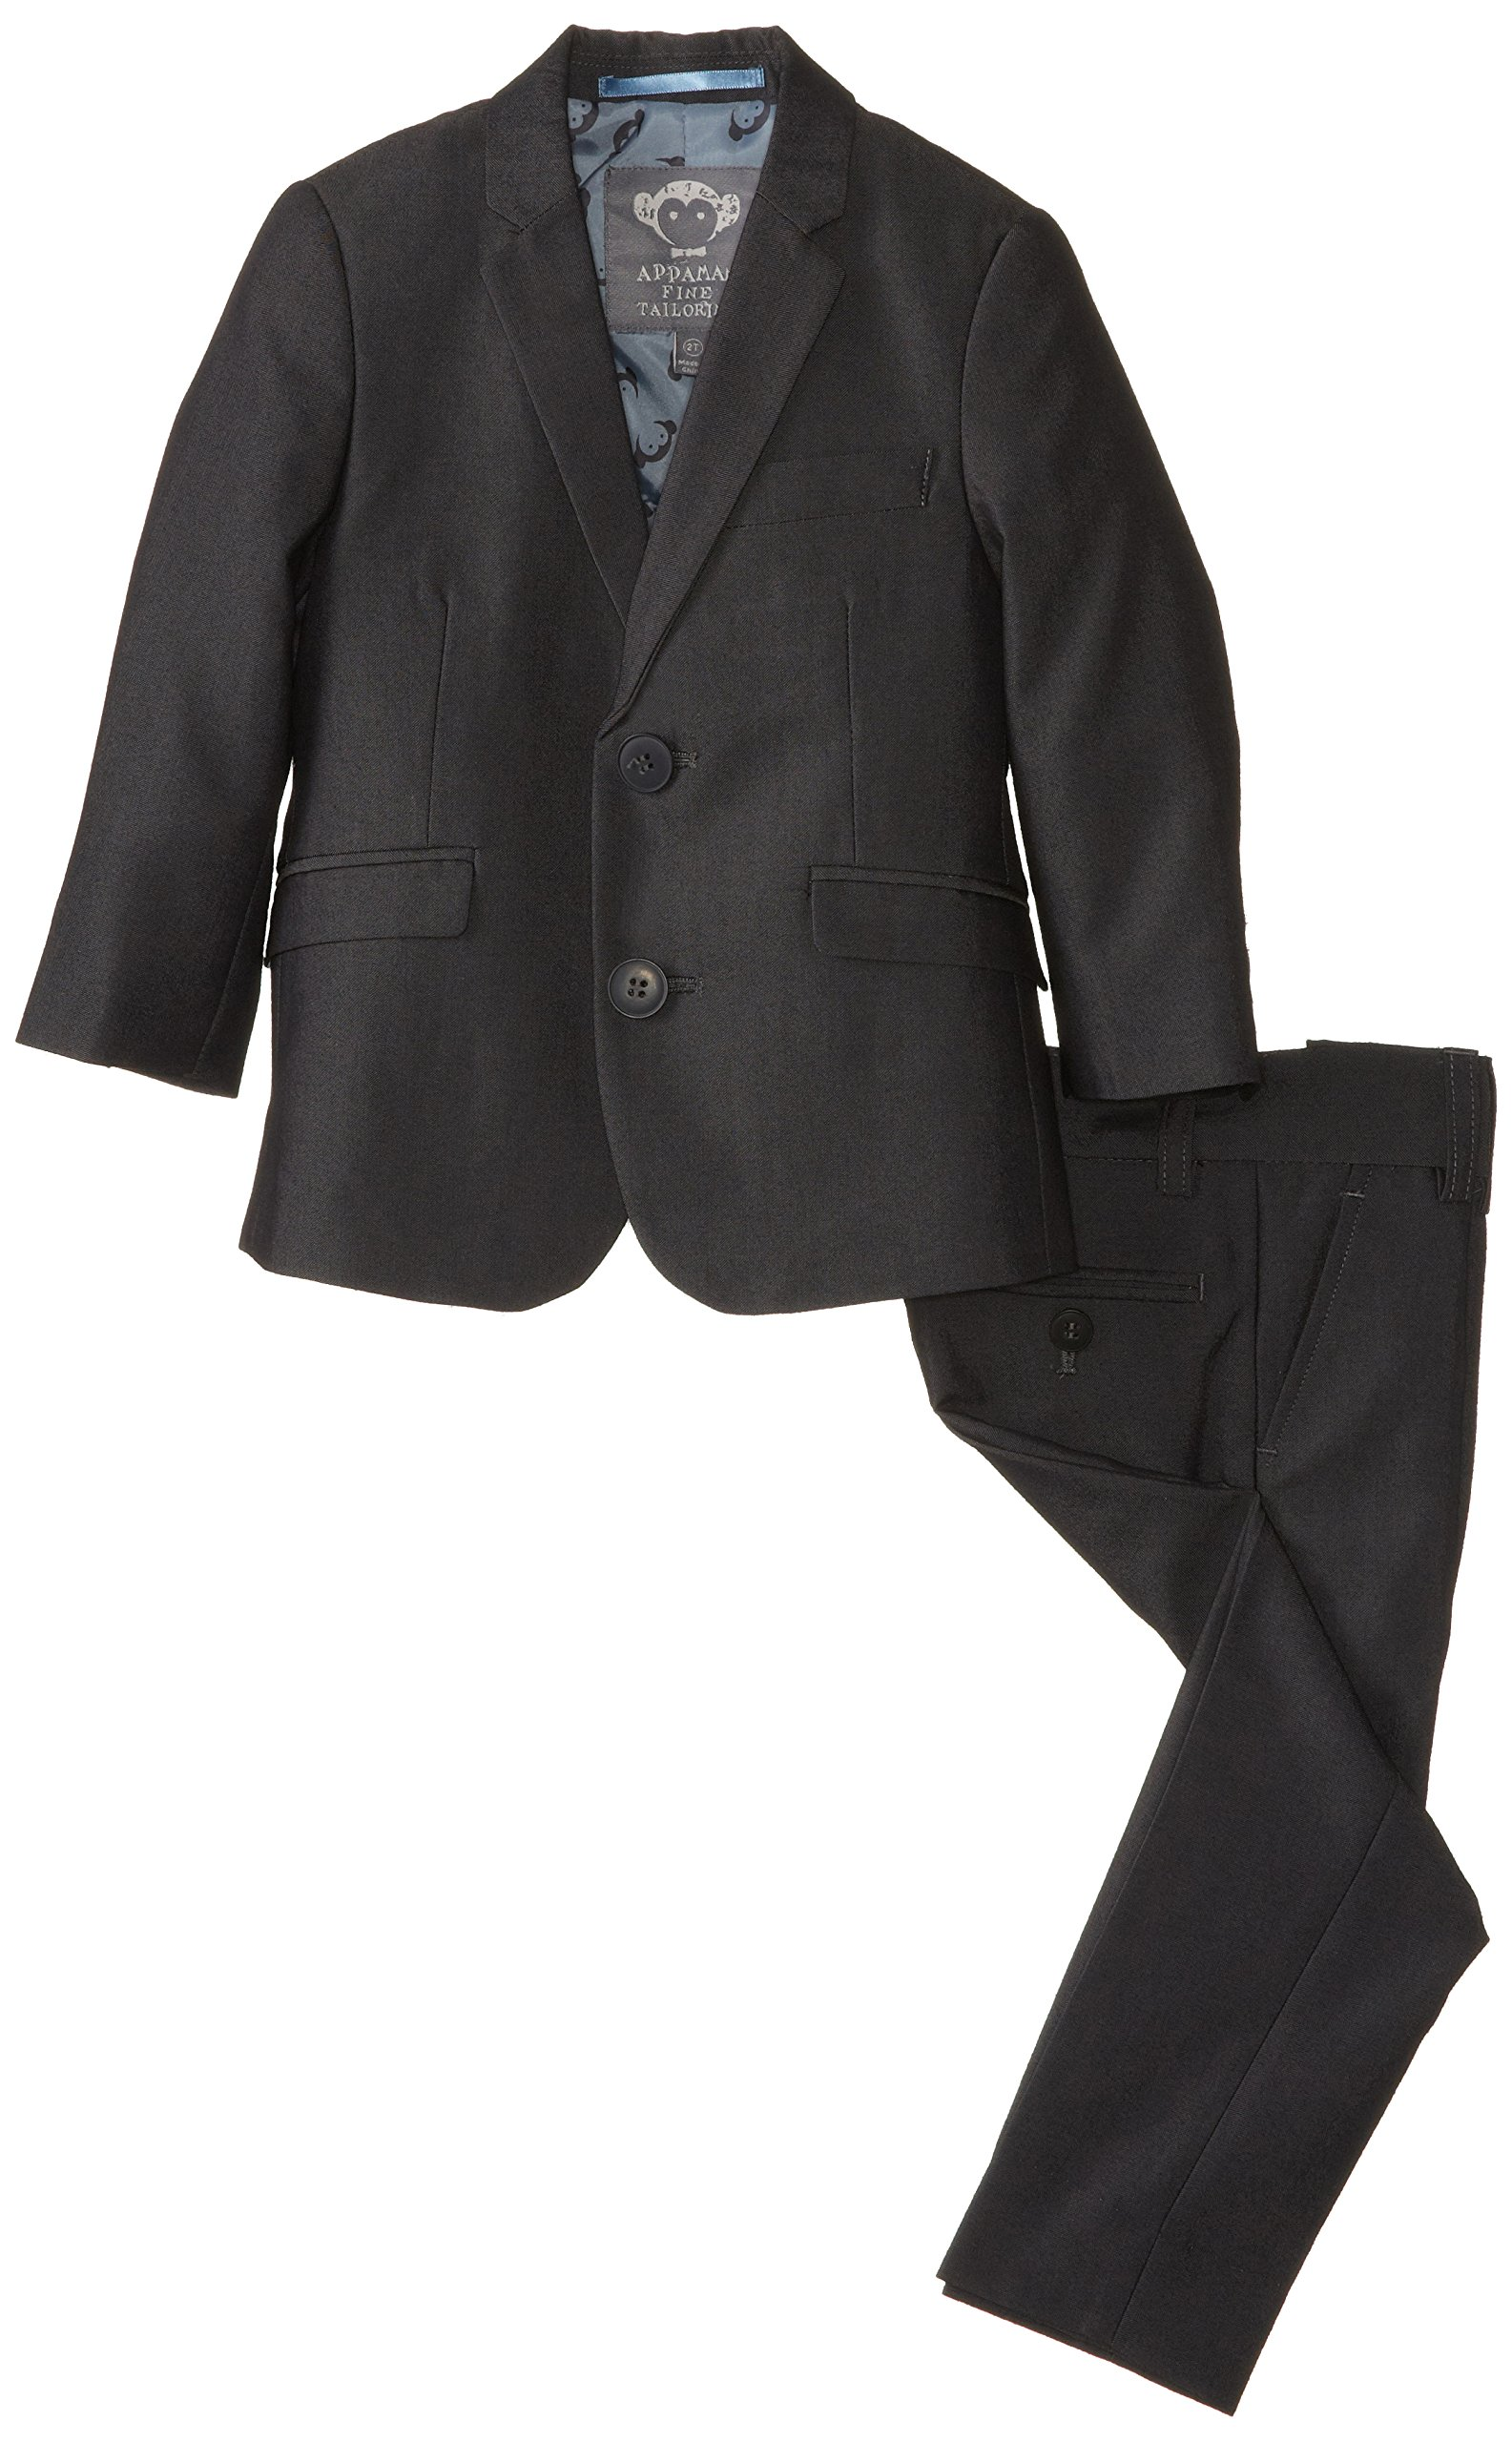 Appaman Boy's Two Piece Classic Mod Suit, Vintage Black, 7